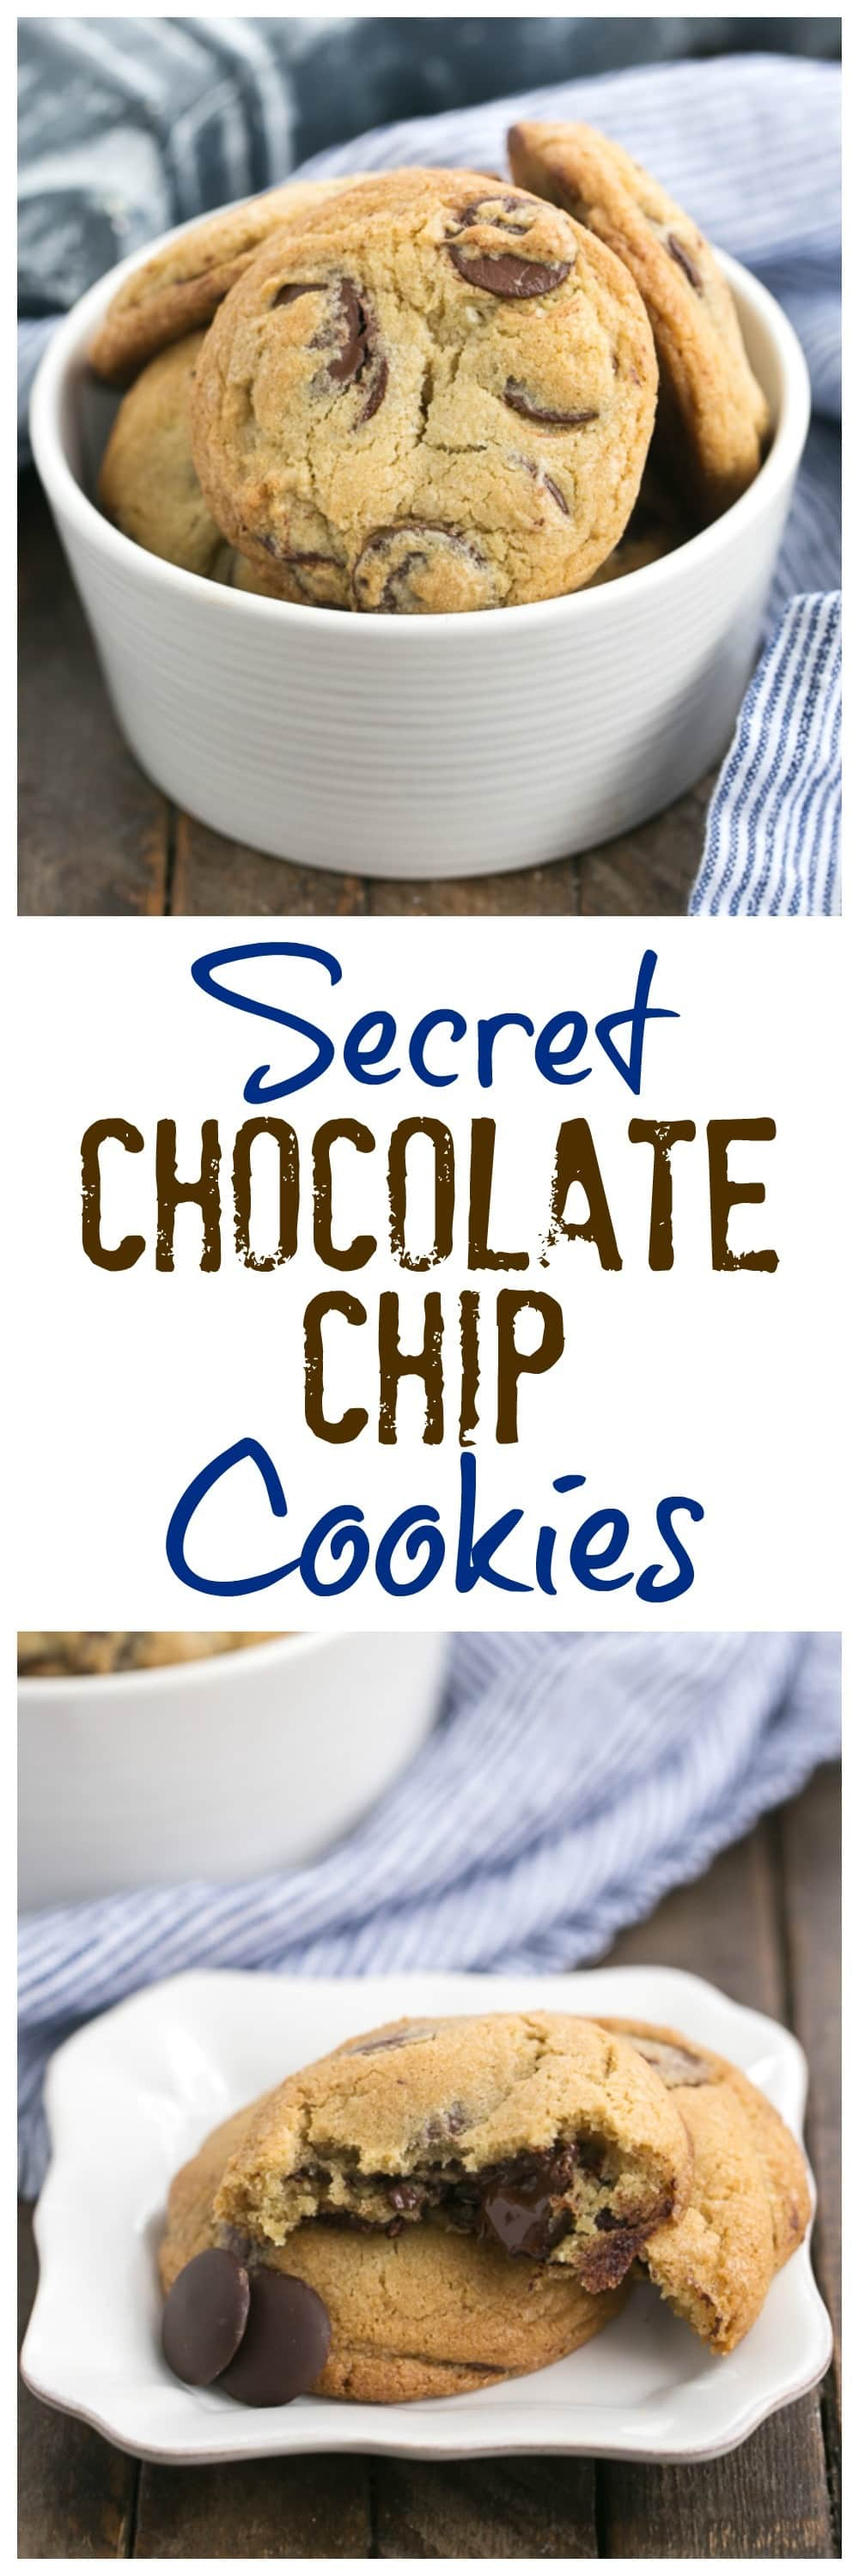 Jacques Torres' Secret Chocolate Chip Cookies collage